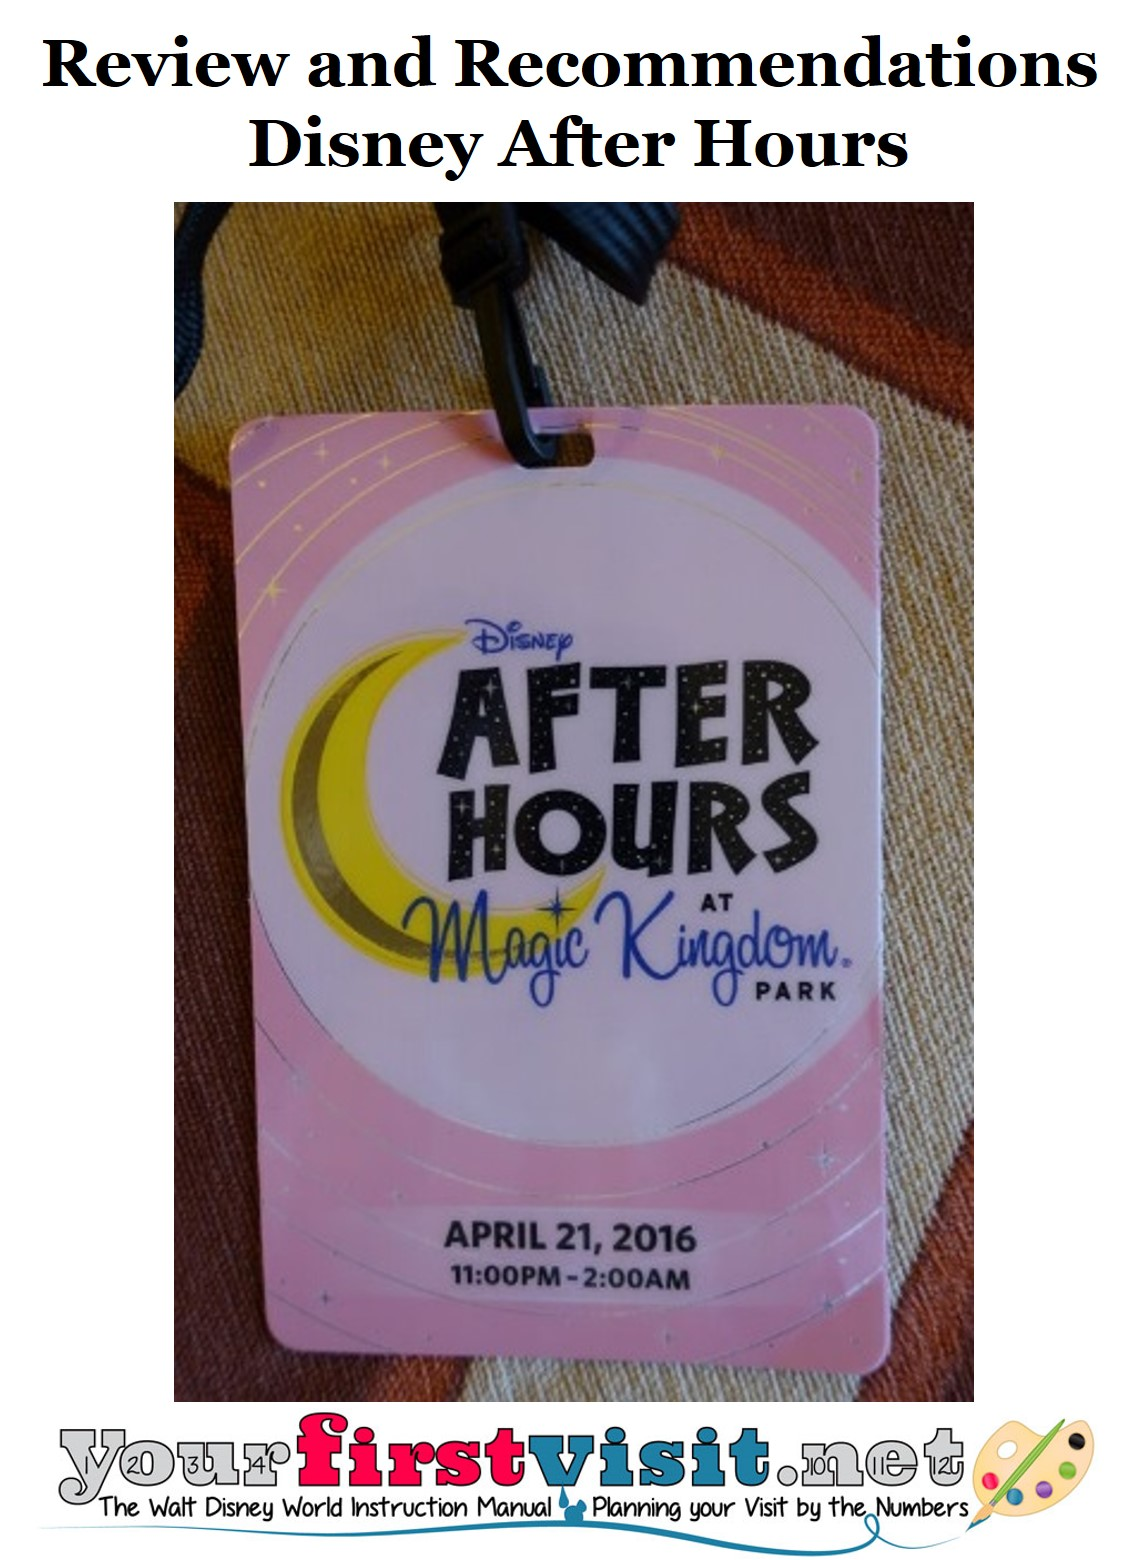 Disney After Hours Report and Review from yourfirstvisit.net